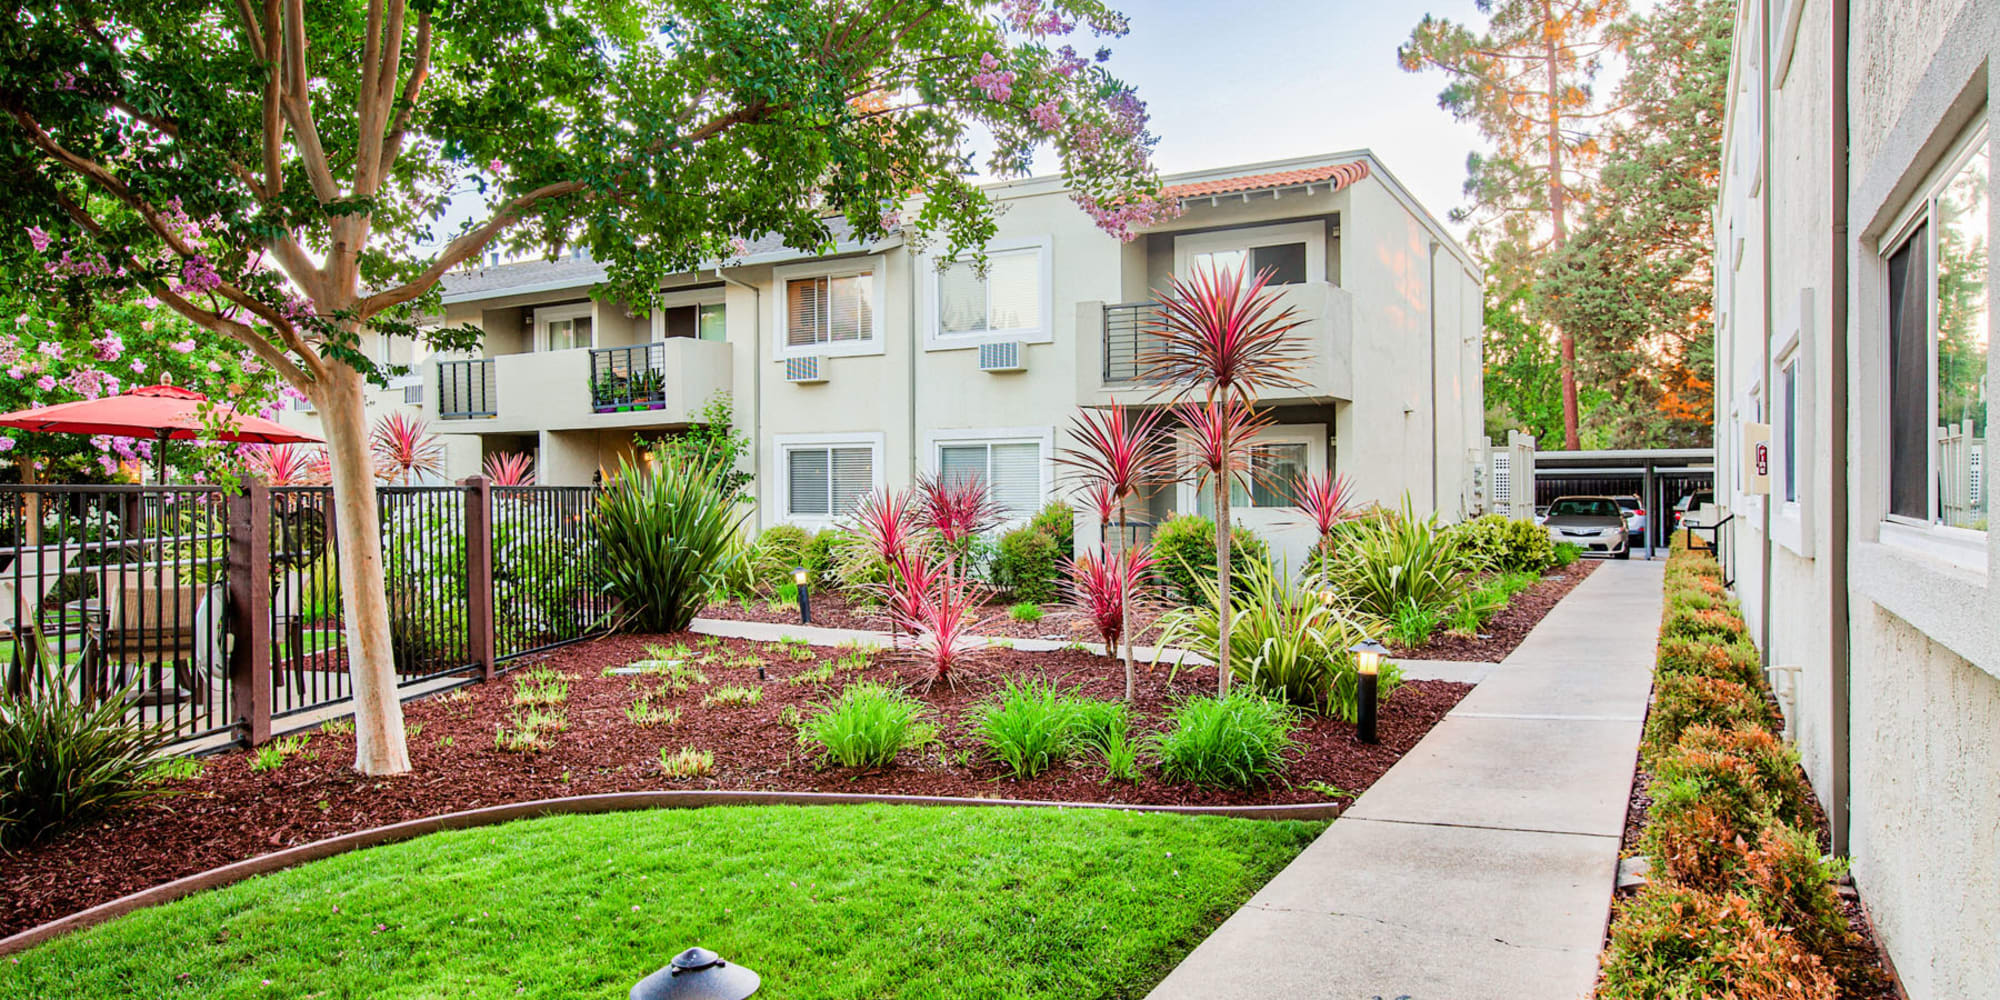 Pathways connecting various parts of the community surrounded by professionally maintained landscaping at Pleasanton Place Apartment Homes in Pleasanton, California